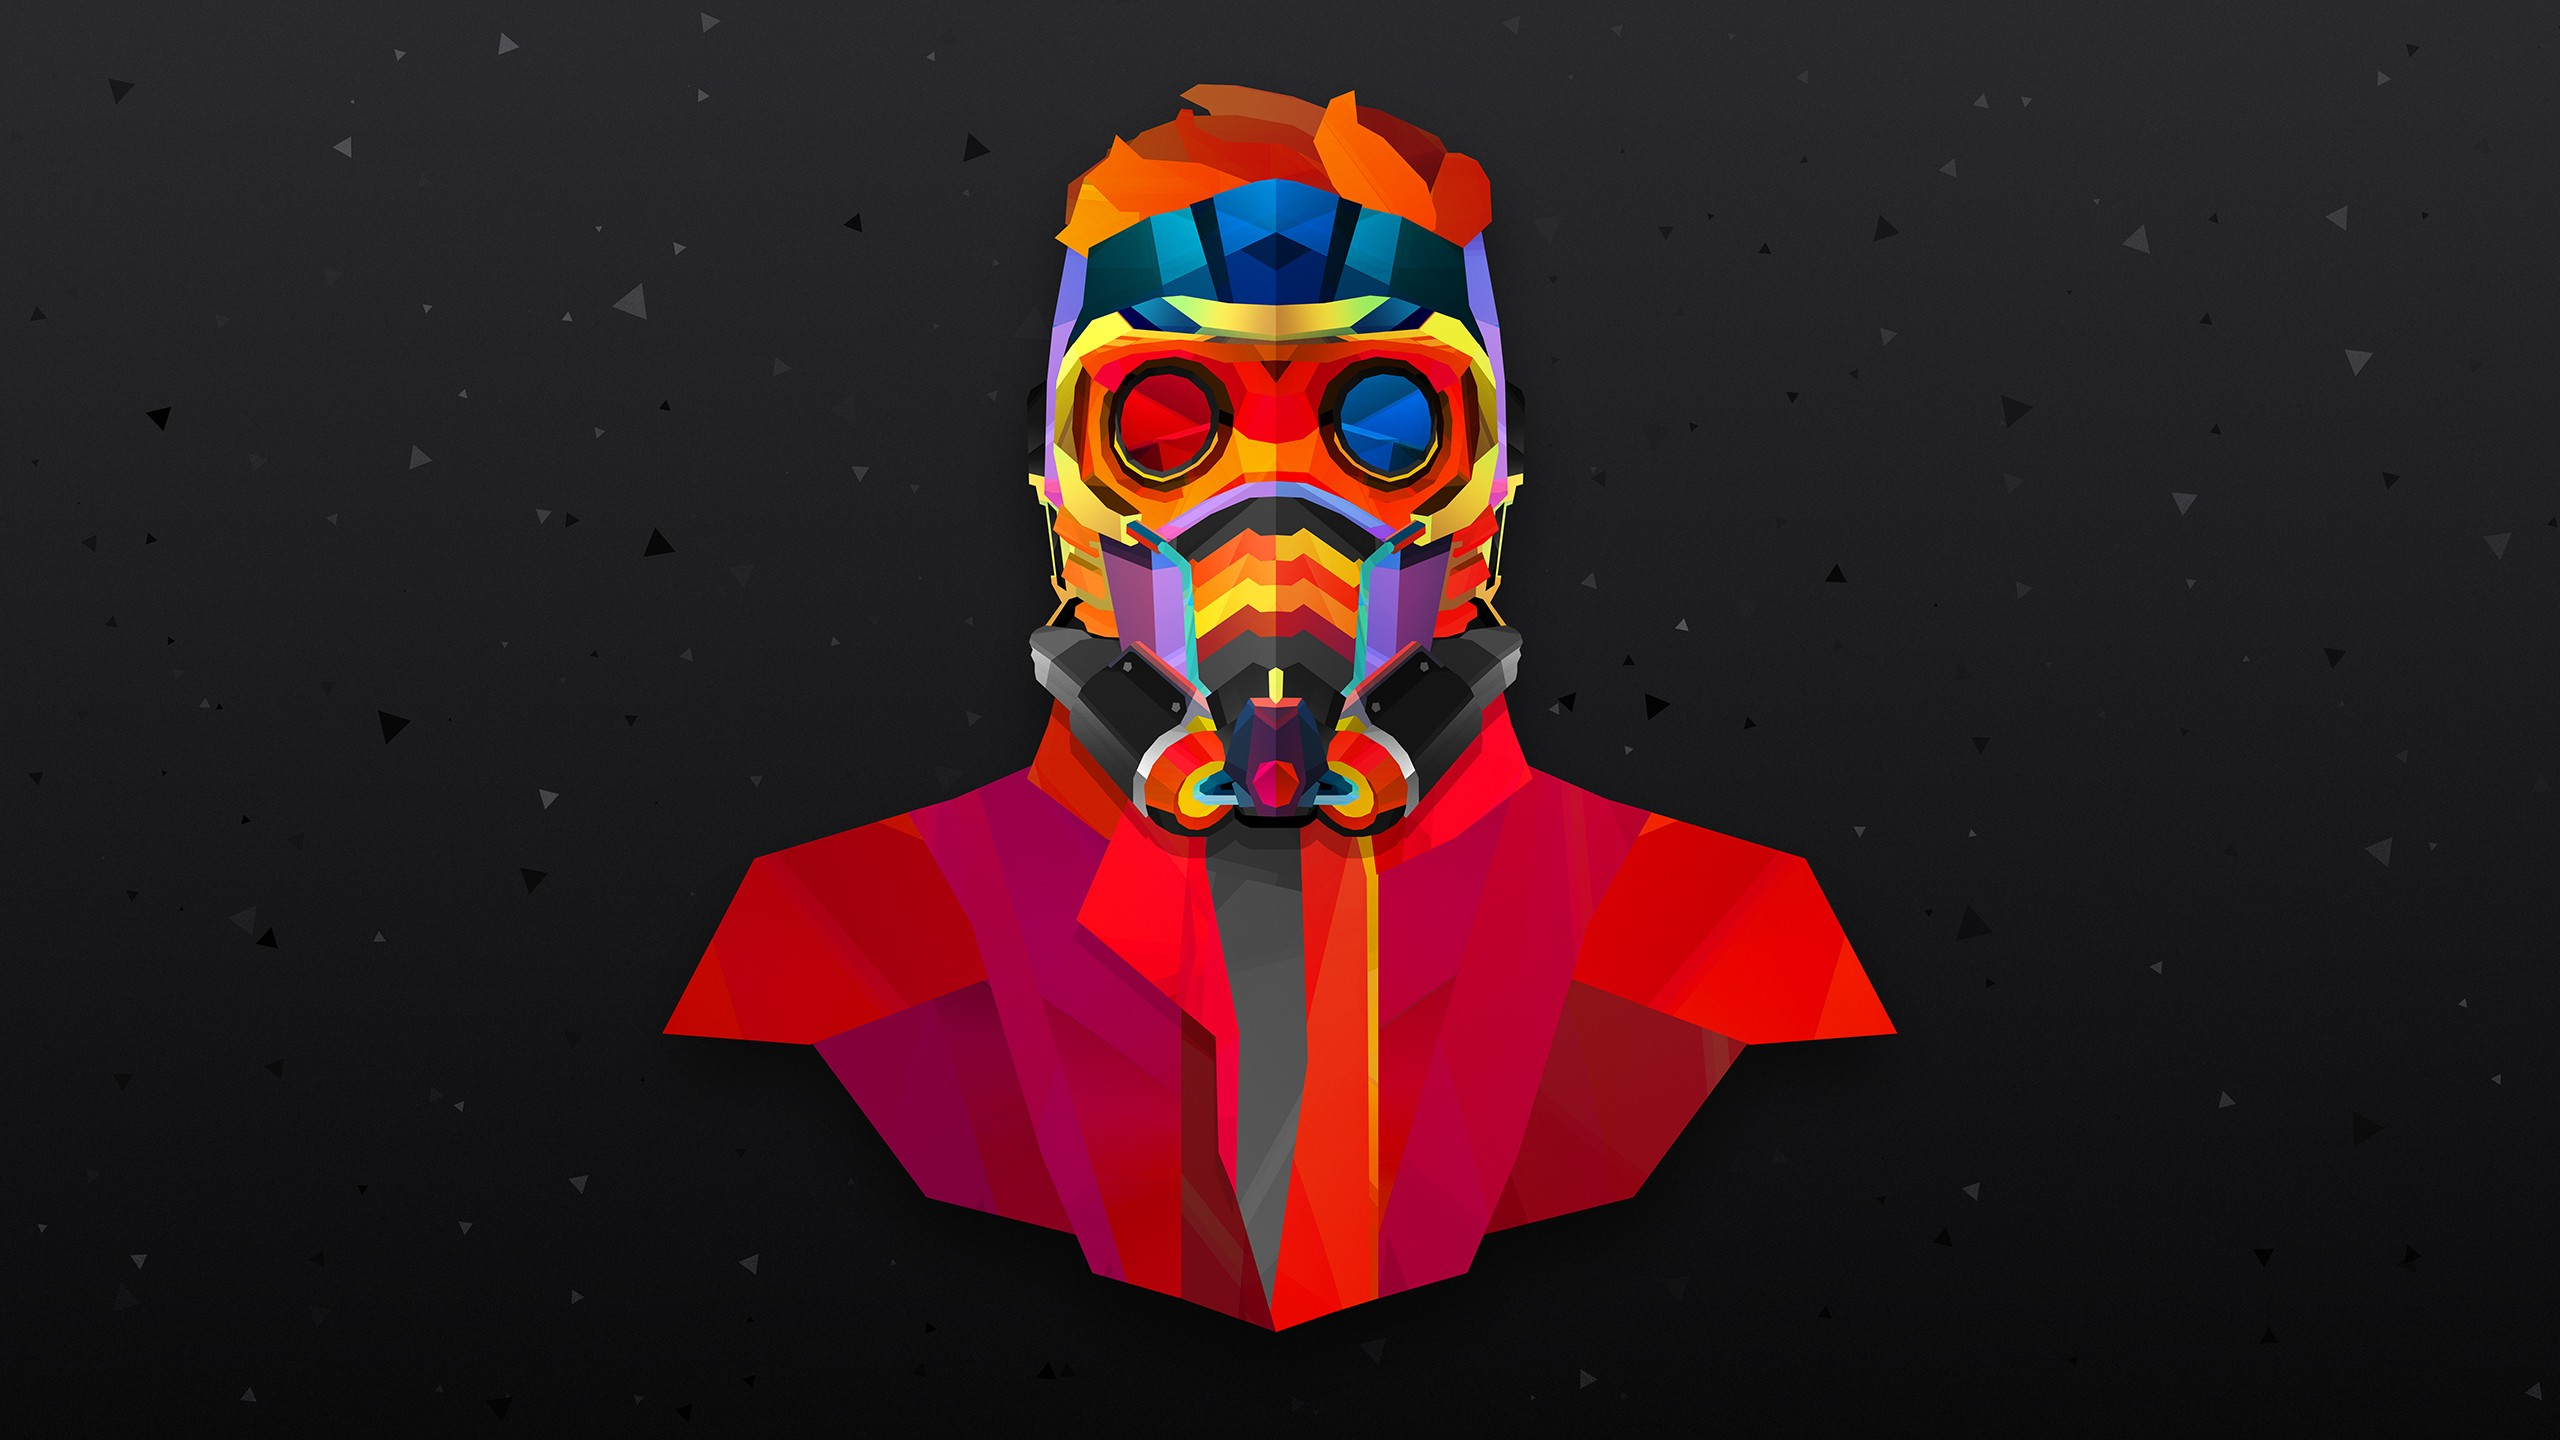 3d Wallpaper 800x1280 2048x1152 Star Lord Colorful Abstract 2048x1152 Resolution